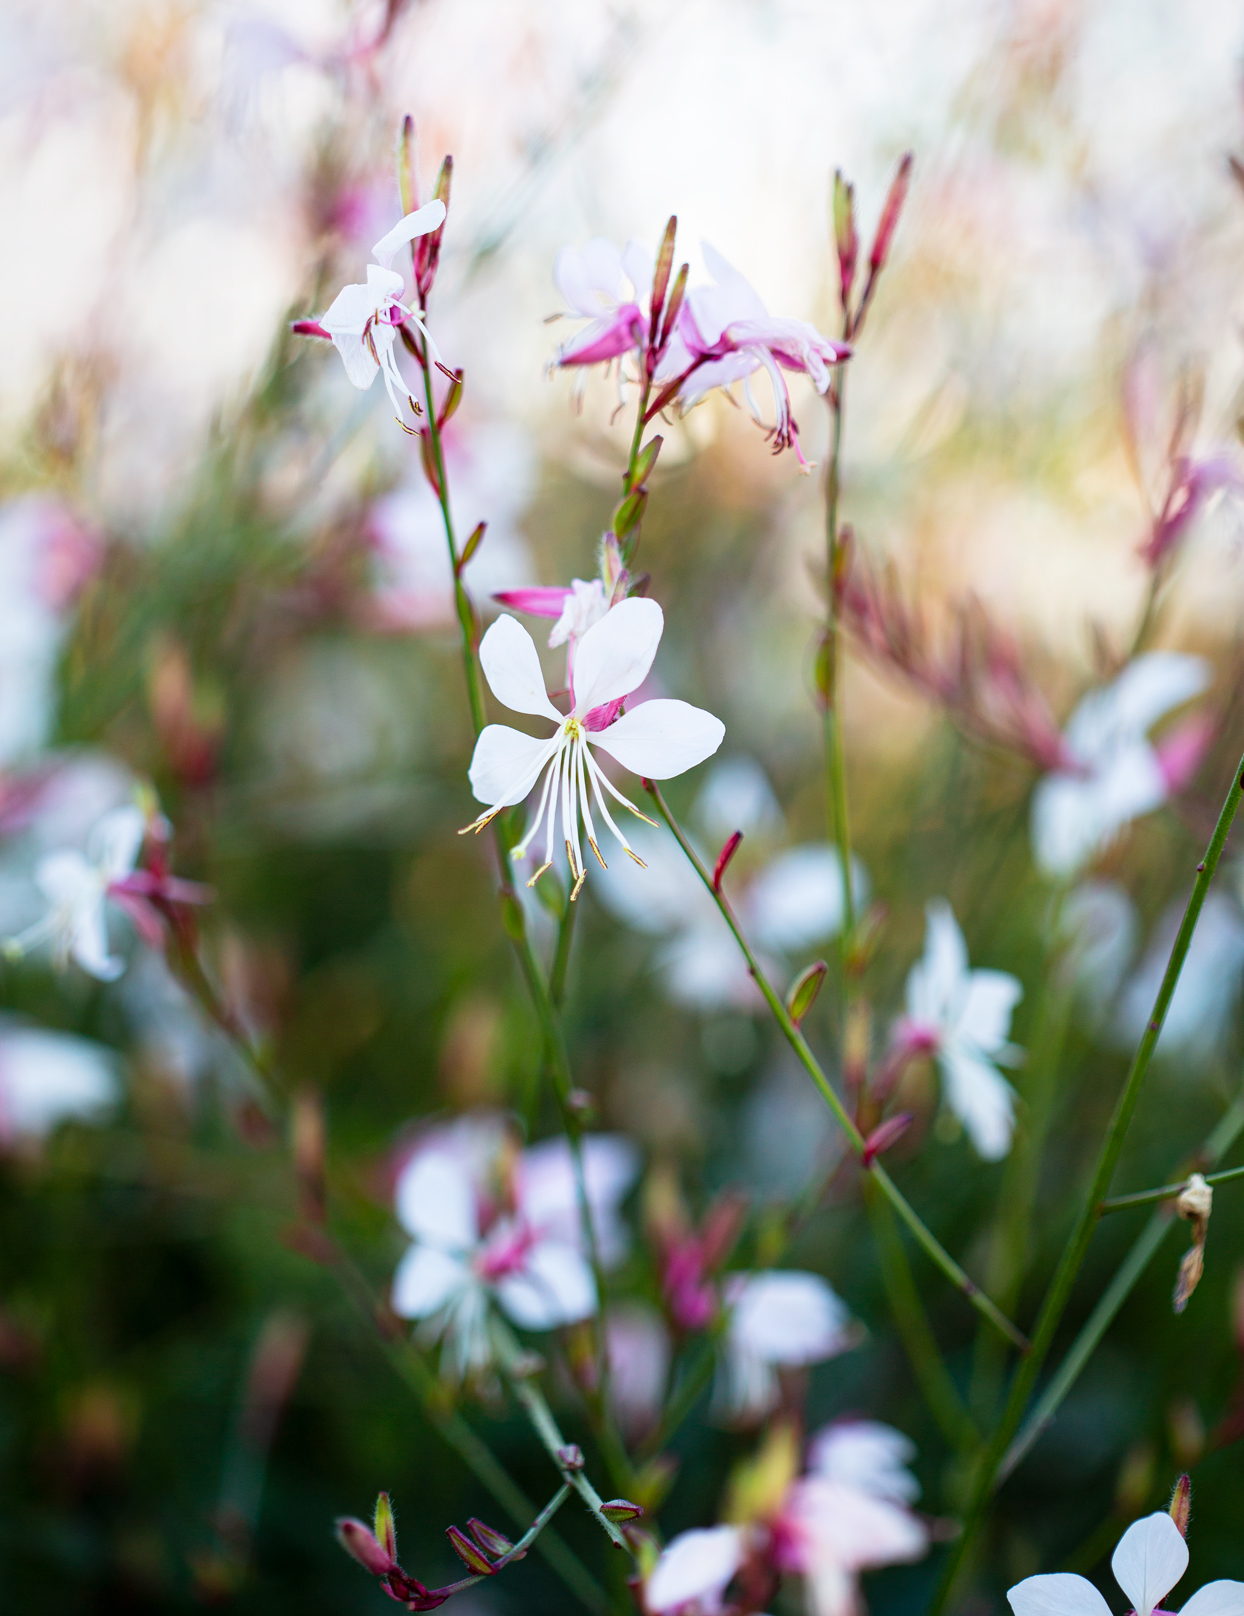 white flowers of the Gaura lindheimeri 'The Bride' plant